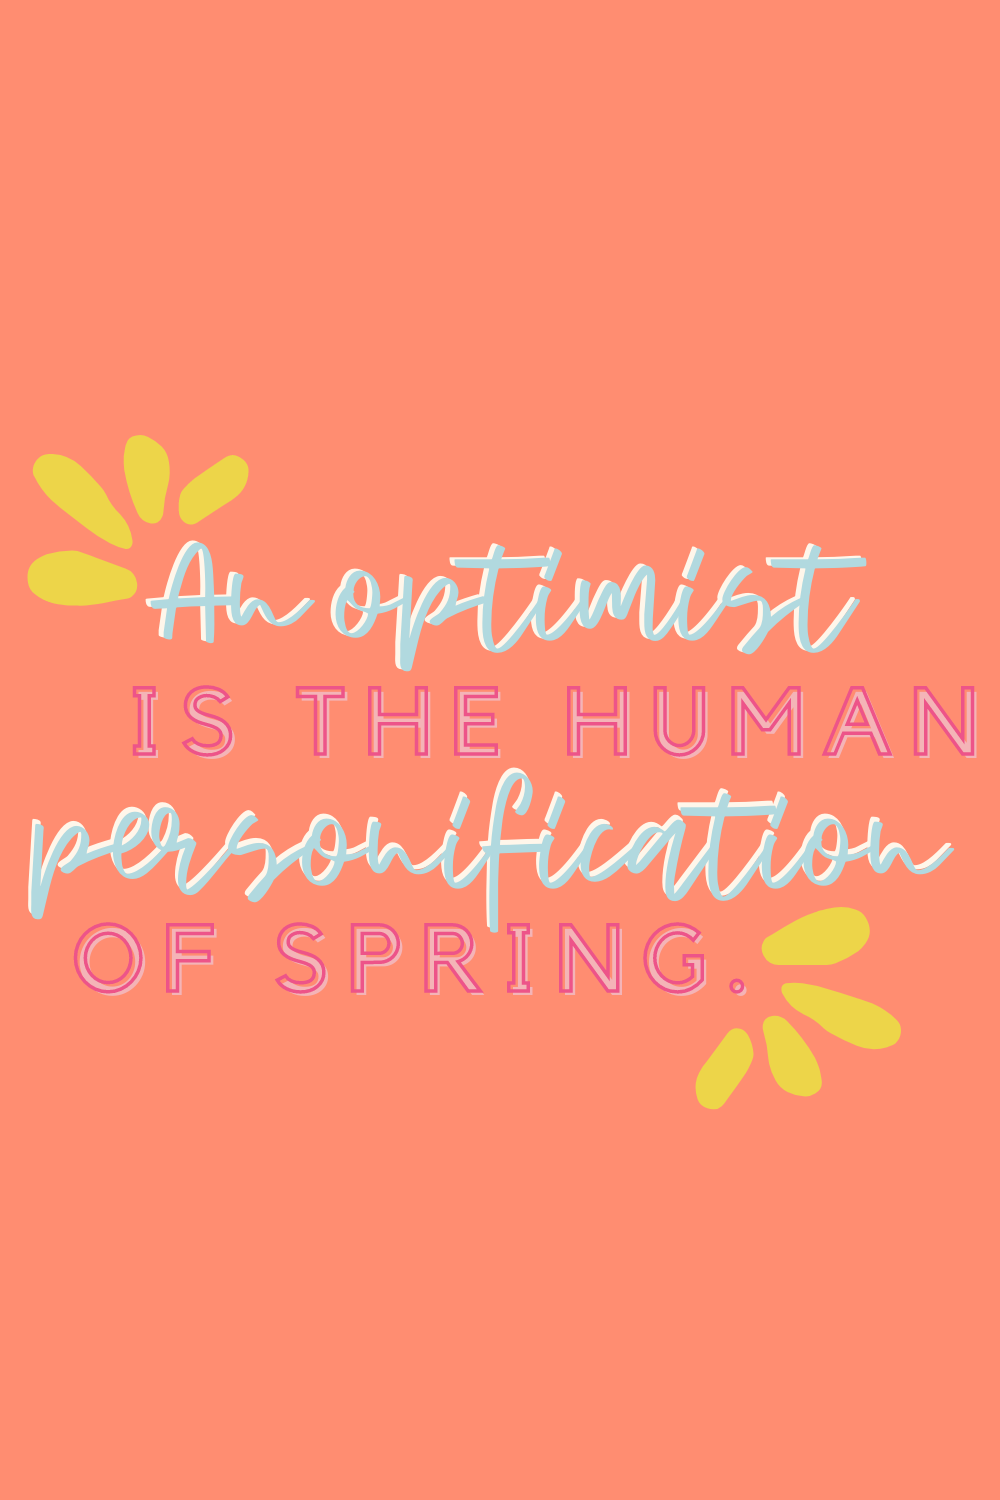 optimist sayings & spring quotes